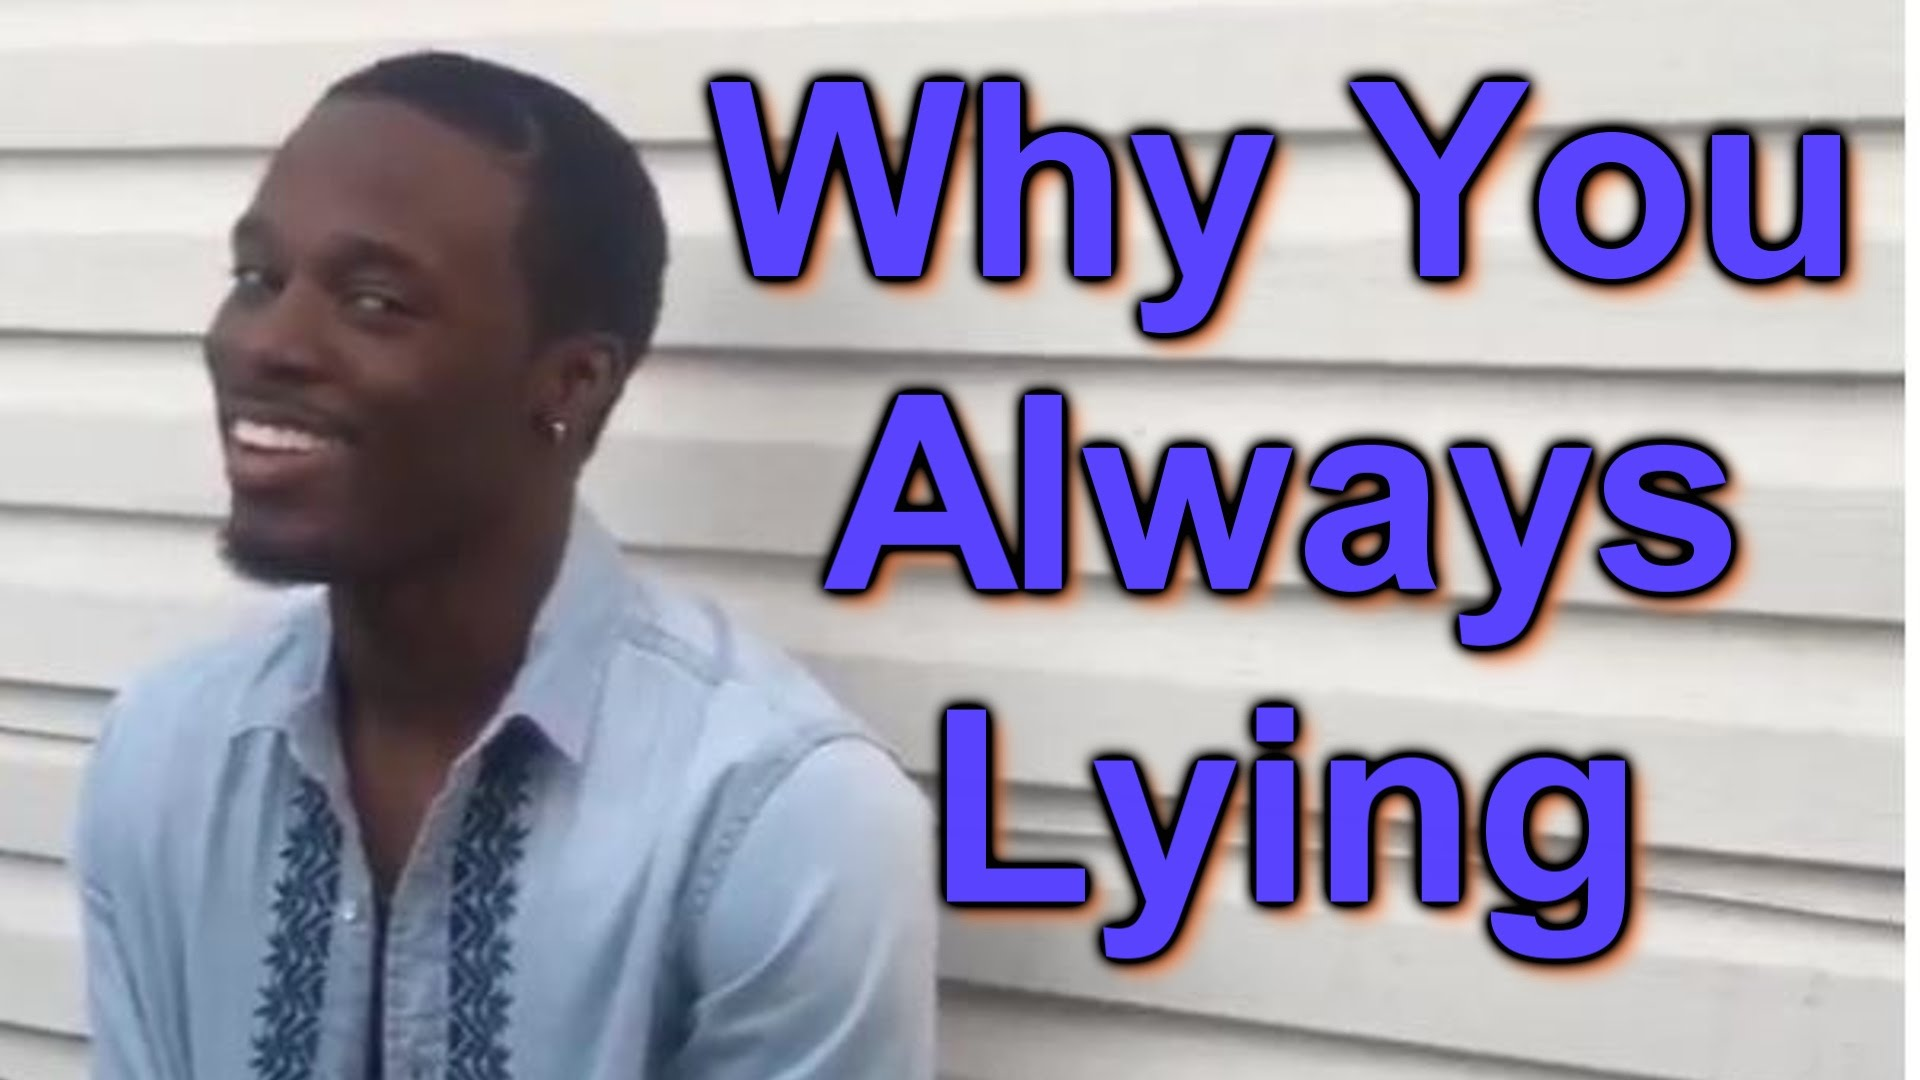 Why You Always Lying (Full Video)